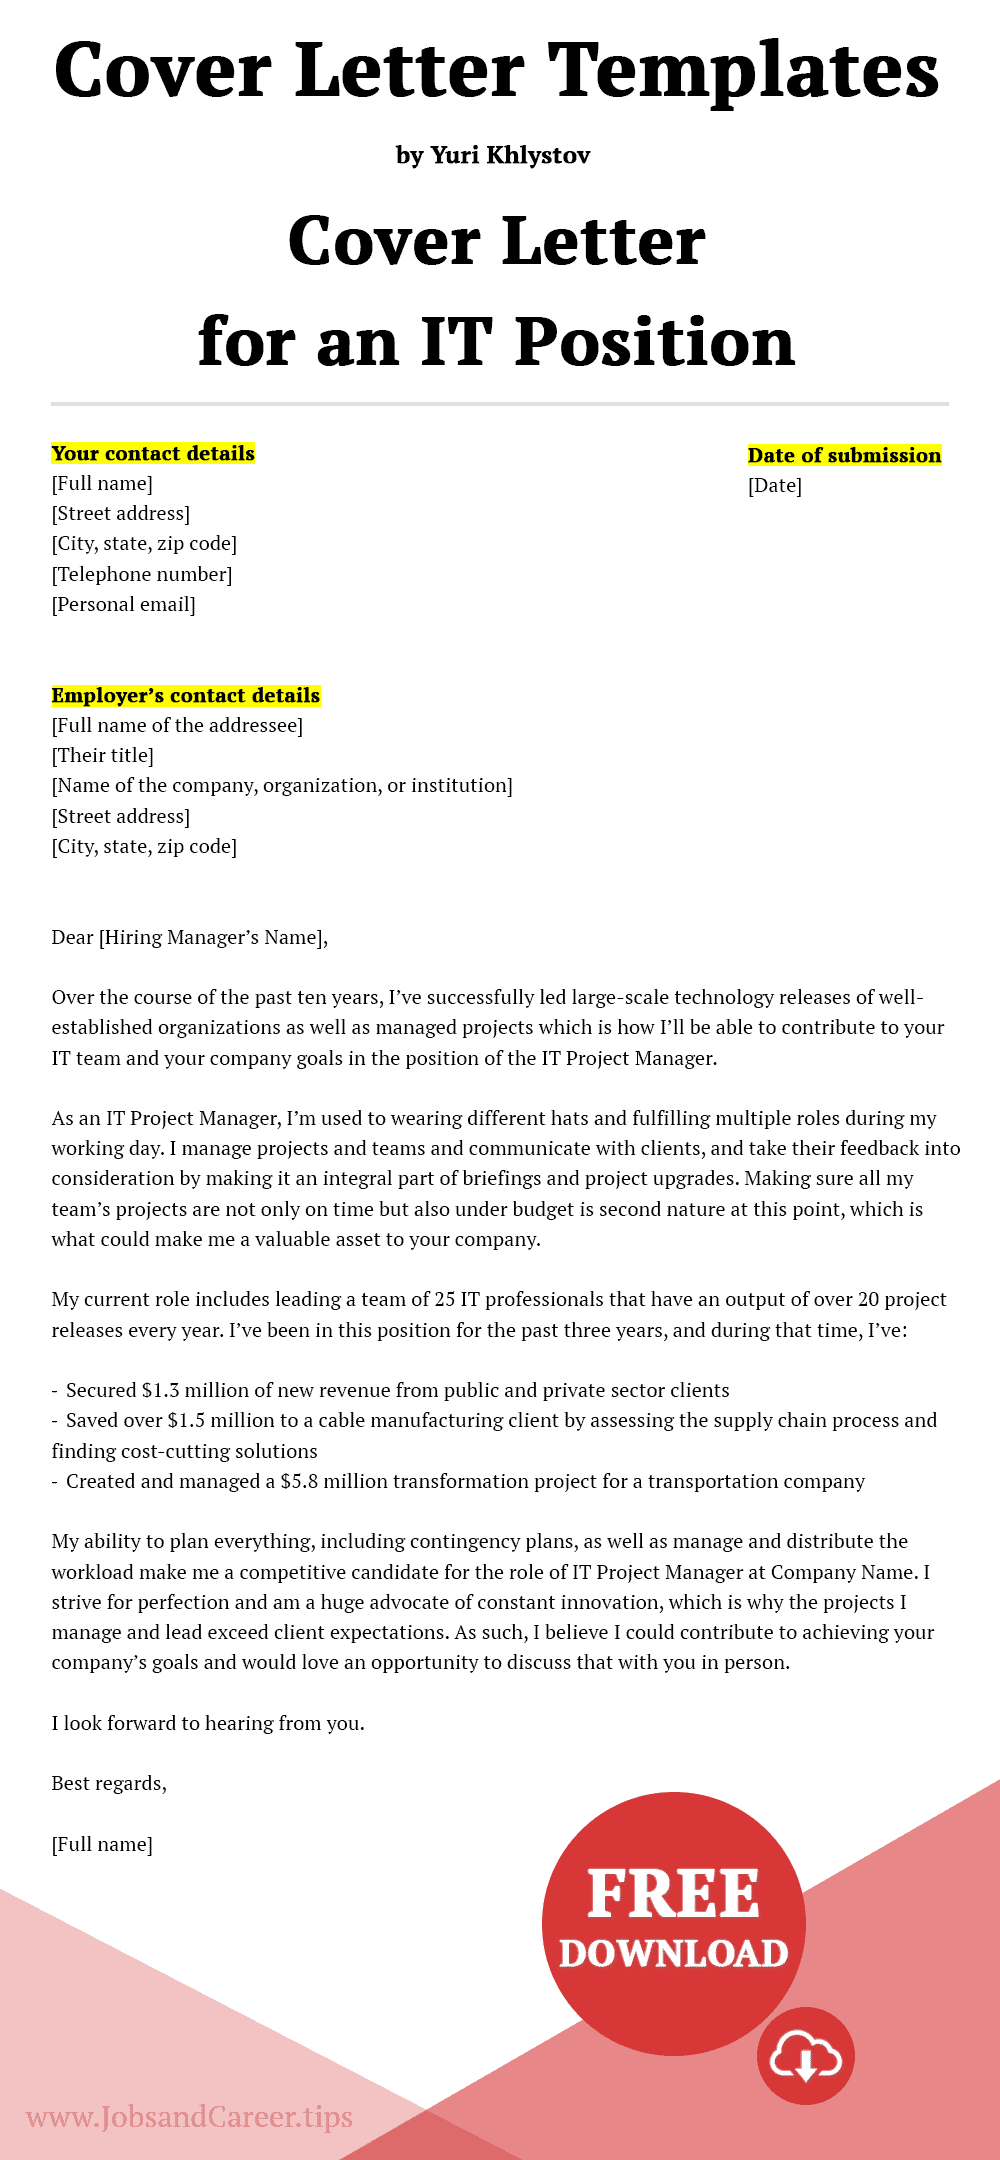 Click to download the cover letter for an IT position